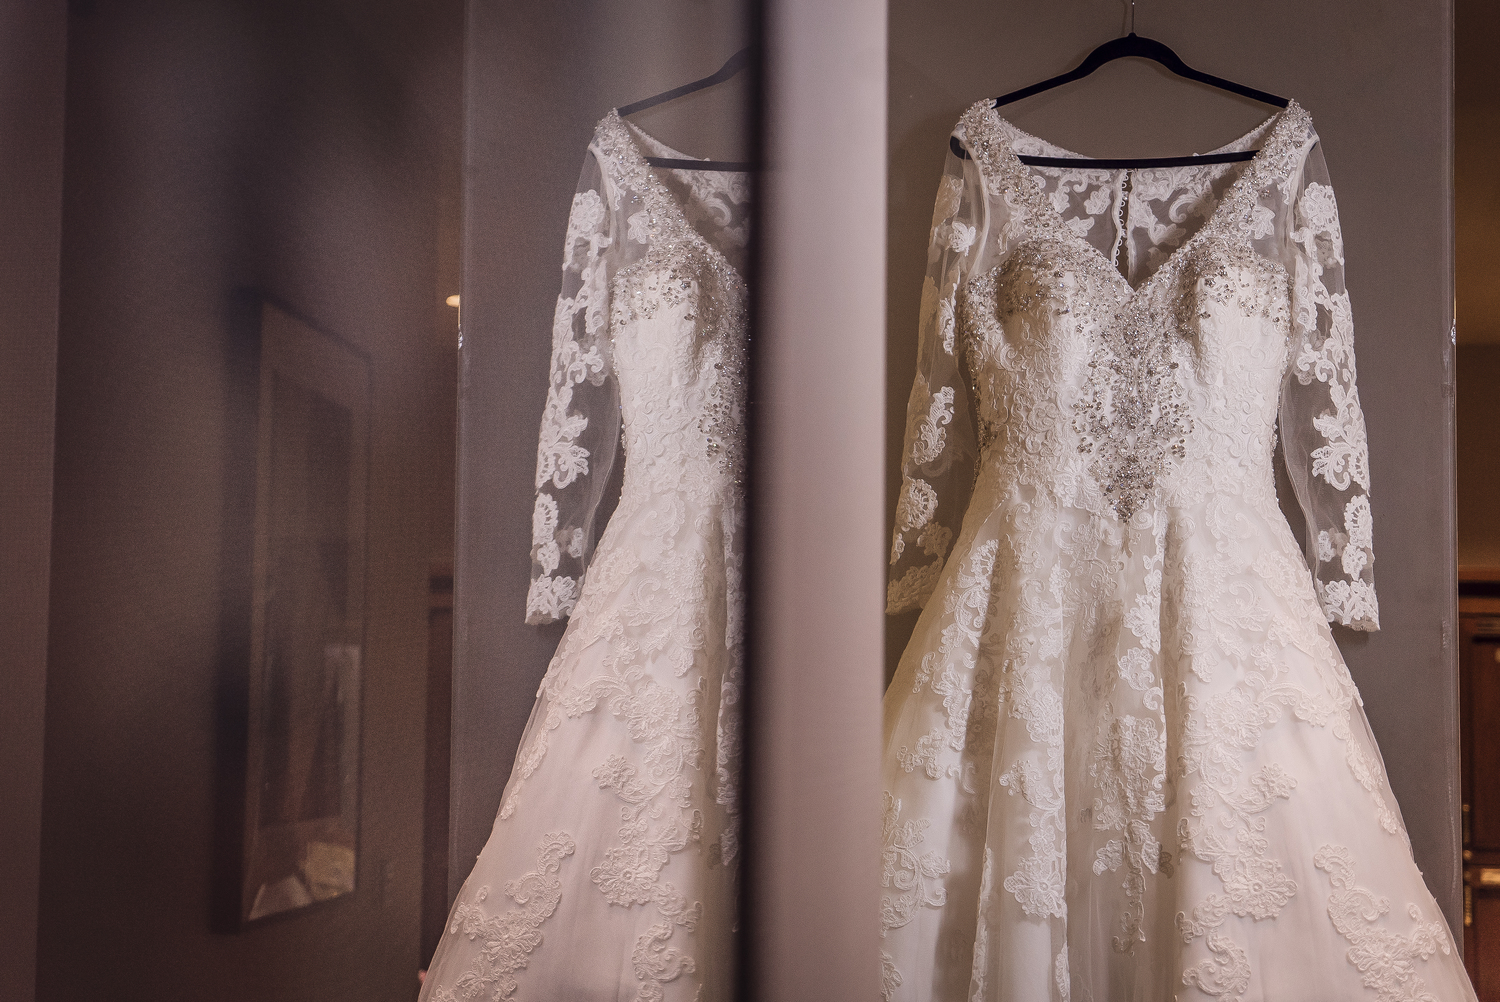 b6b4449557722 Allure Couture Wedding Gown customized with the addition of sleeves and  hand placed Swarovski crystals.